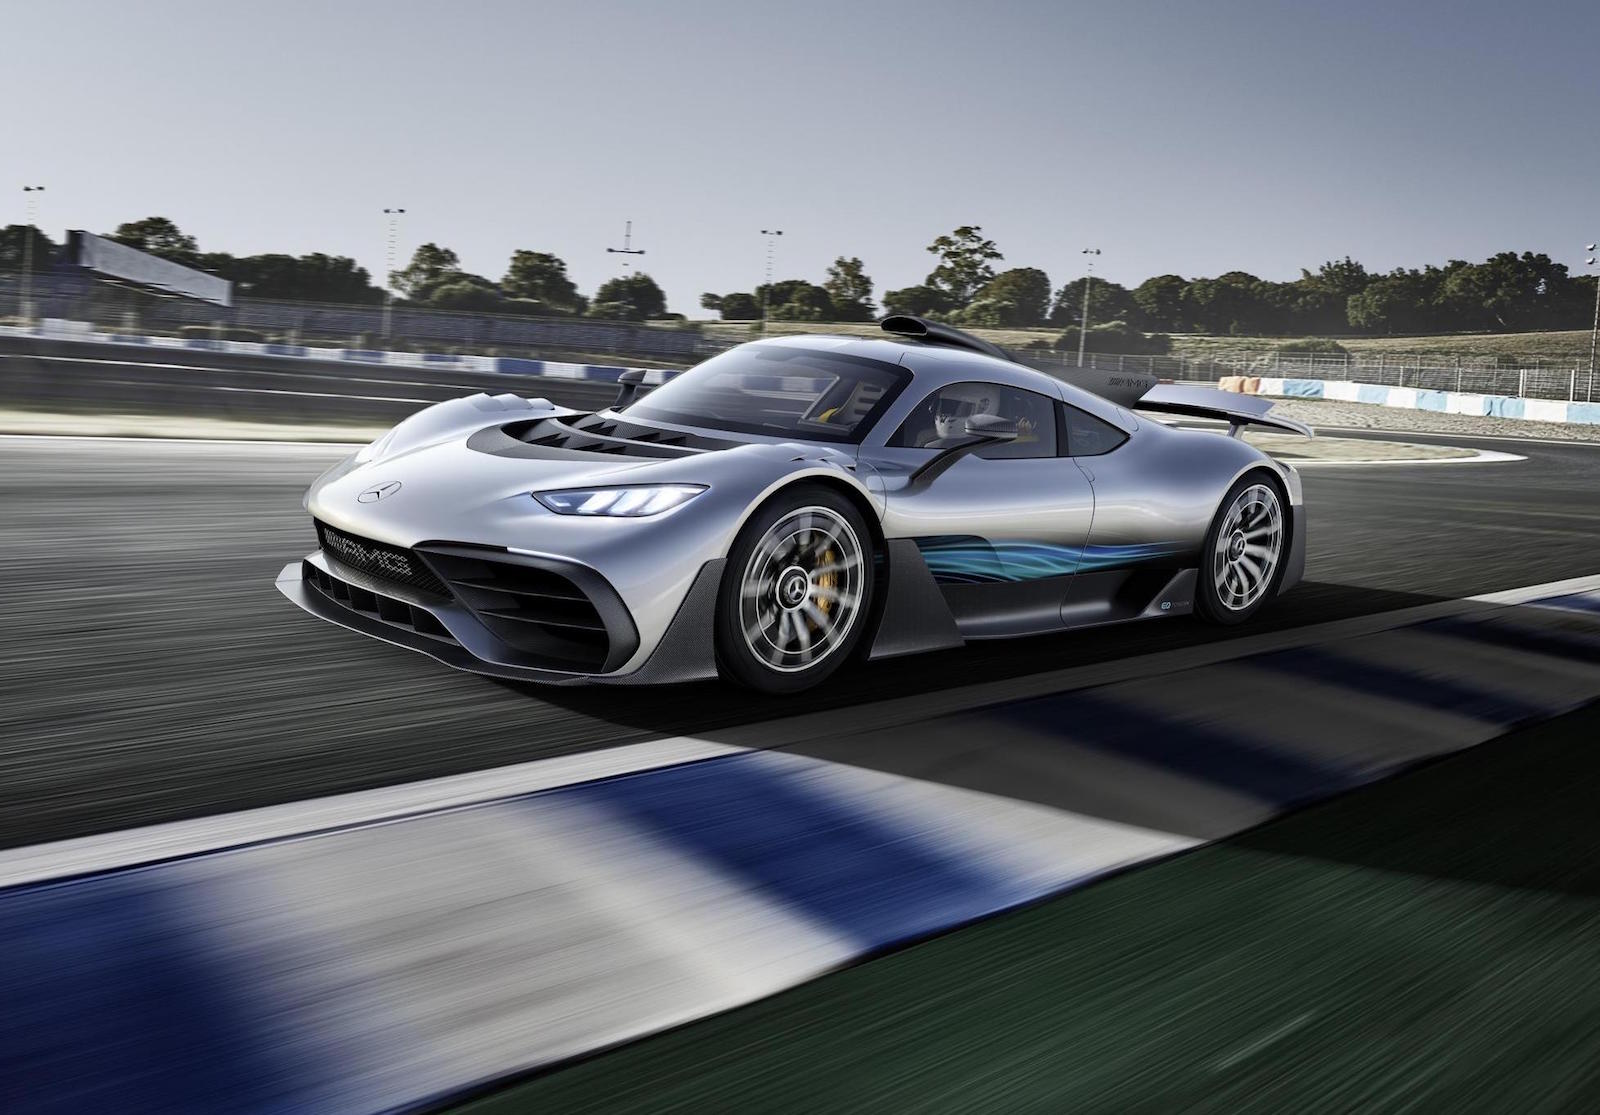 Mercedes-AMG Project ONE hypercar concept blasts in with 986bhp